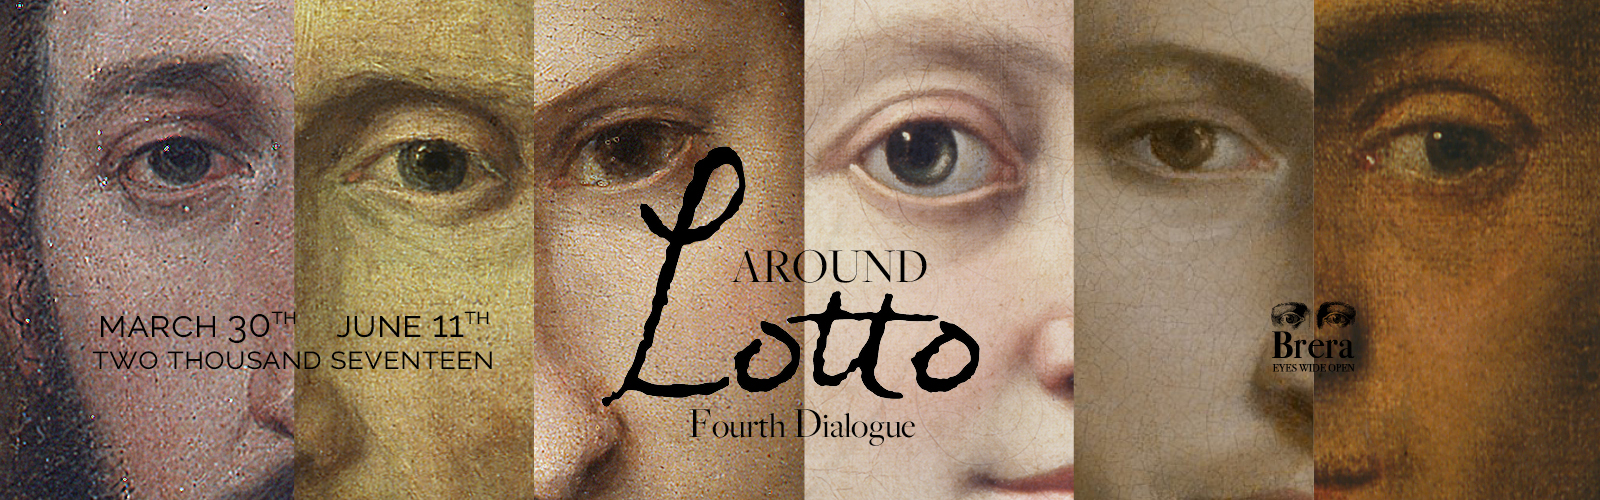 "Fourth Dialogue ""Around Lotto"""